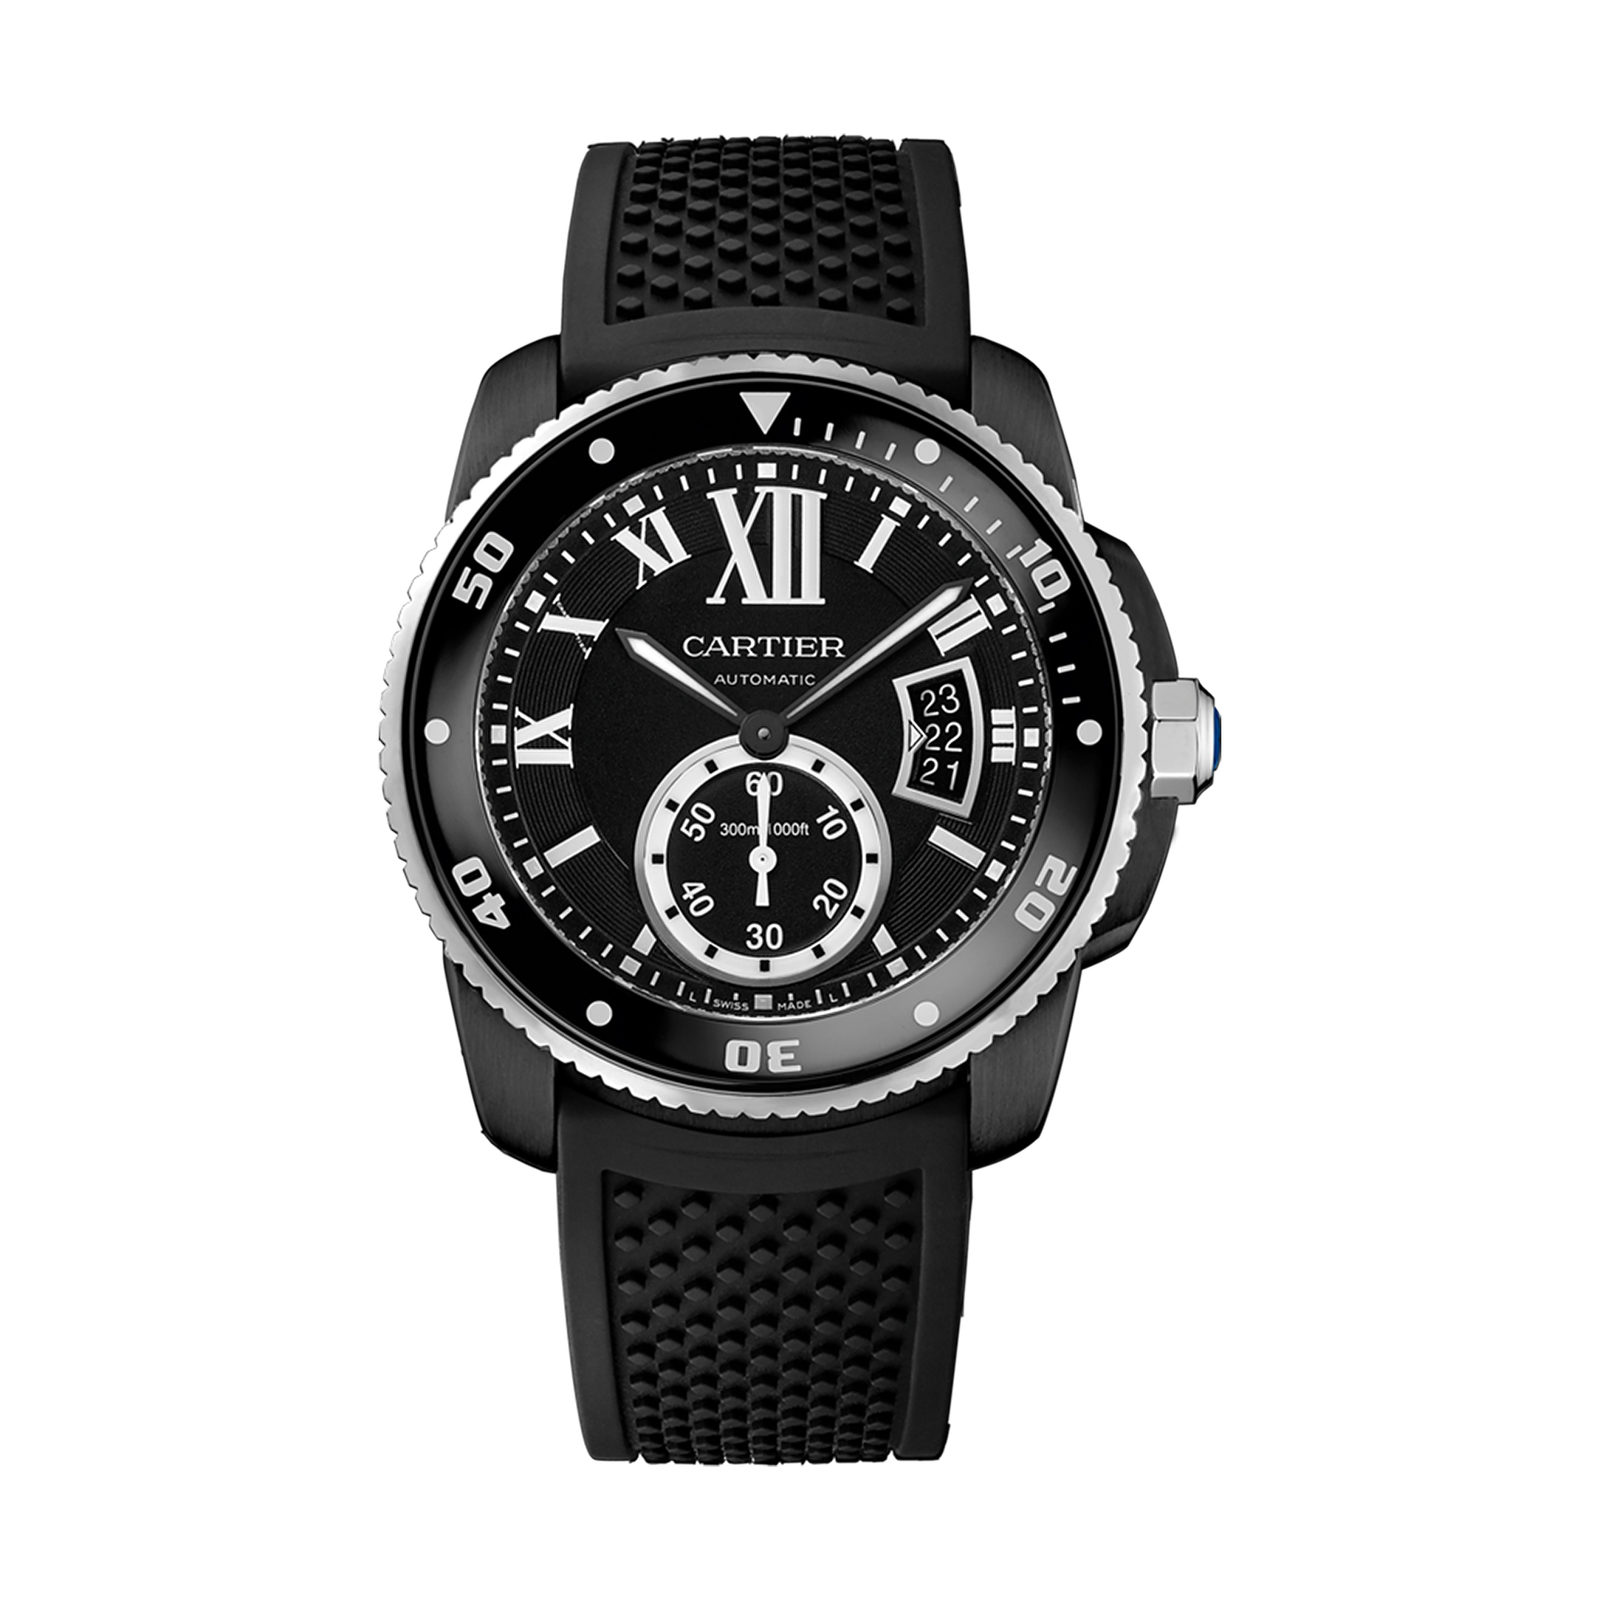 Calibre de Cartier Carbon Diver Watch